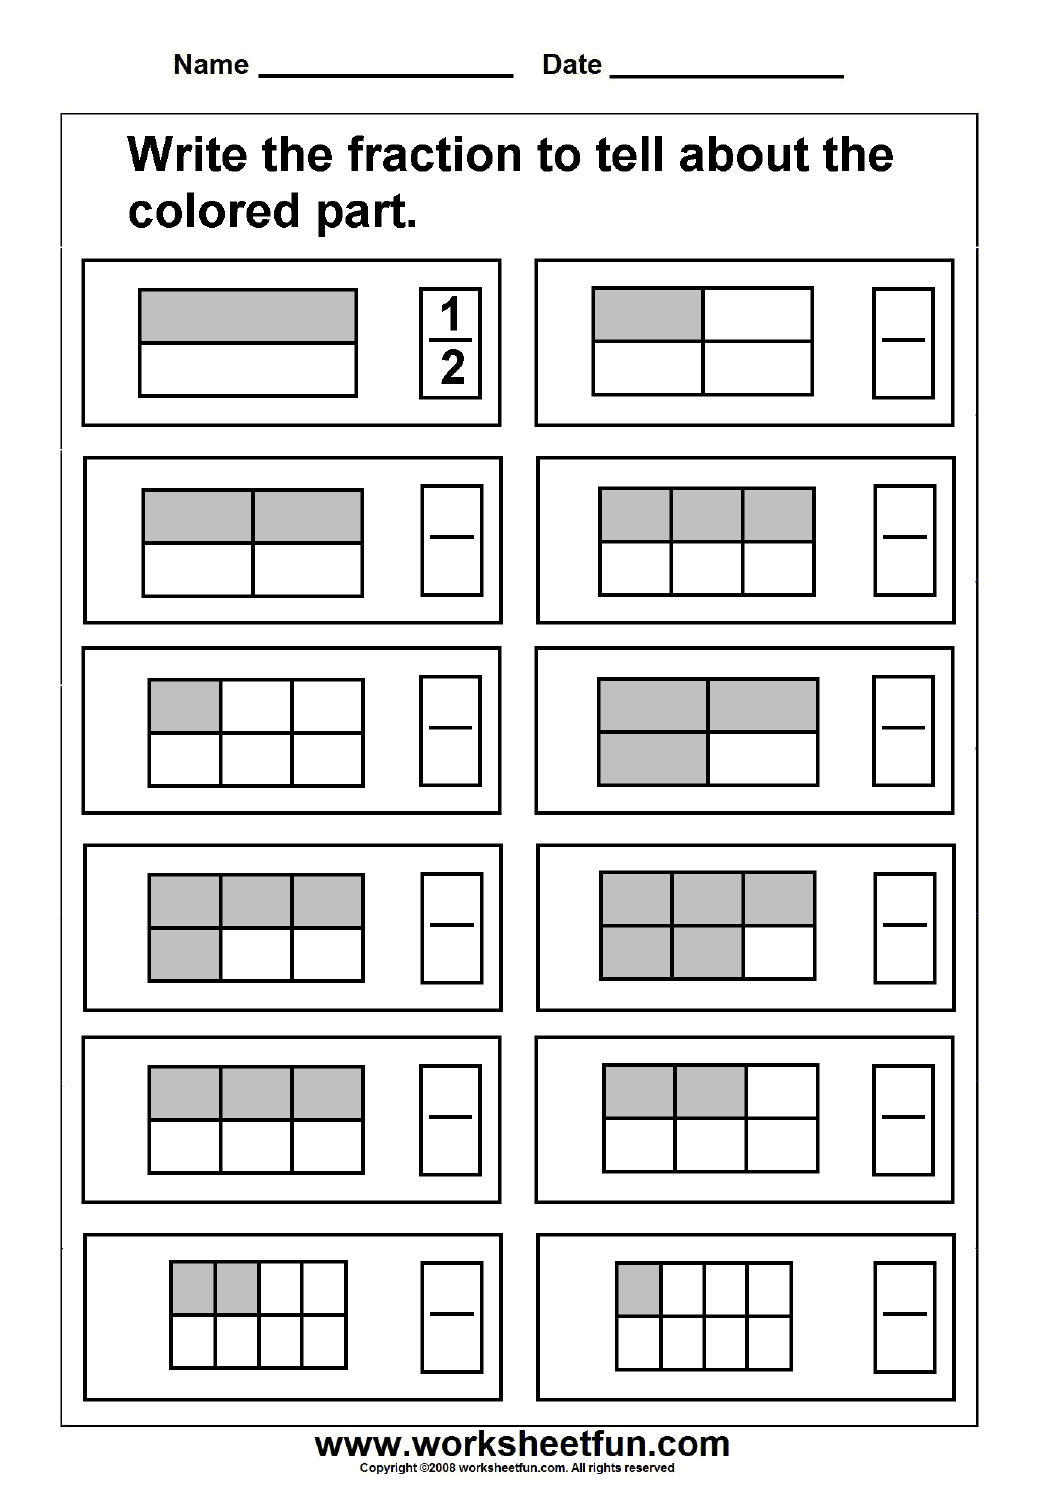 worksheet Worksheets Fractions fraction model free printable worksheets worksheetfun 3 worksheets